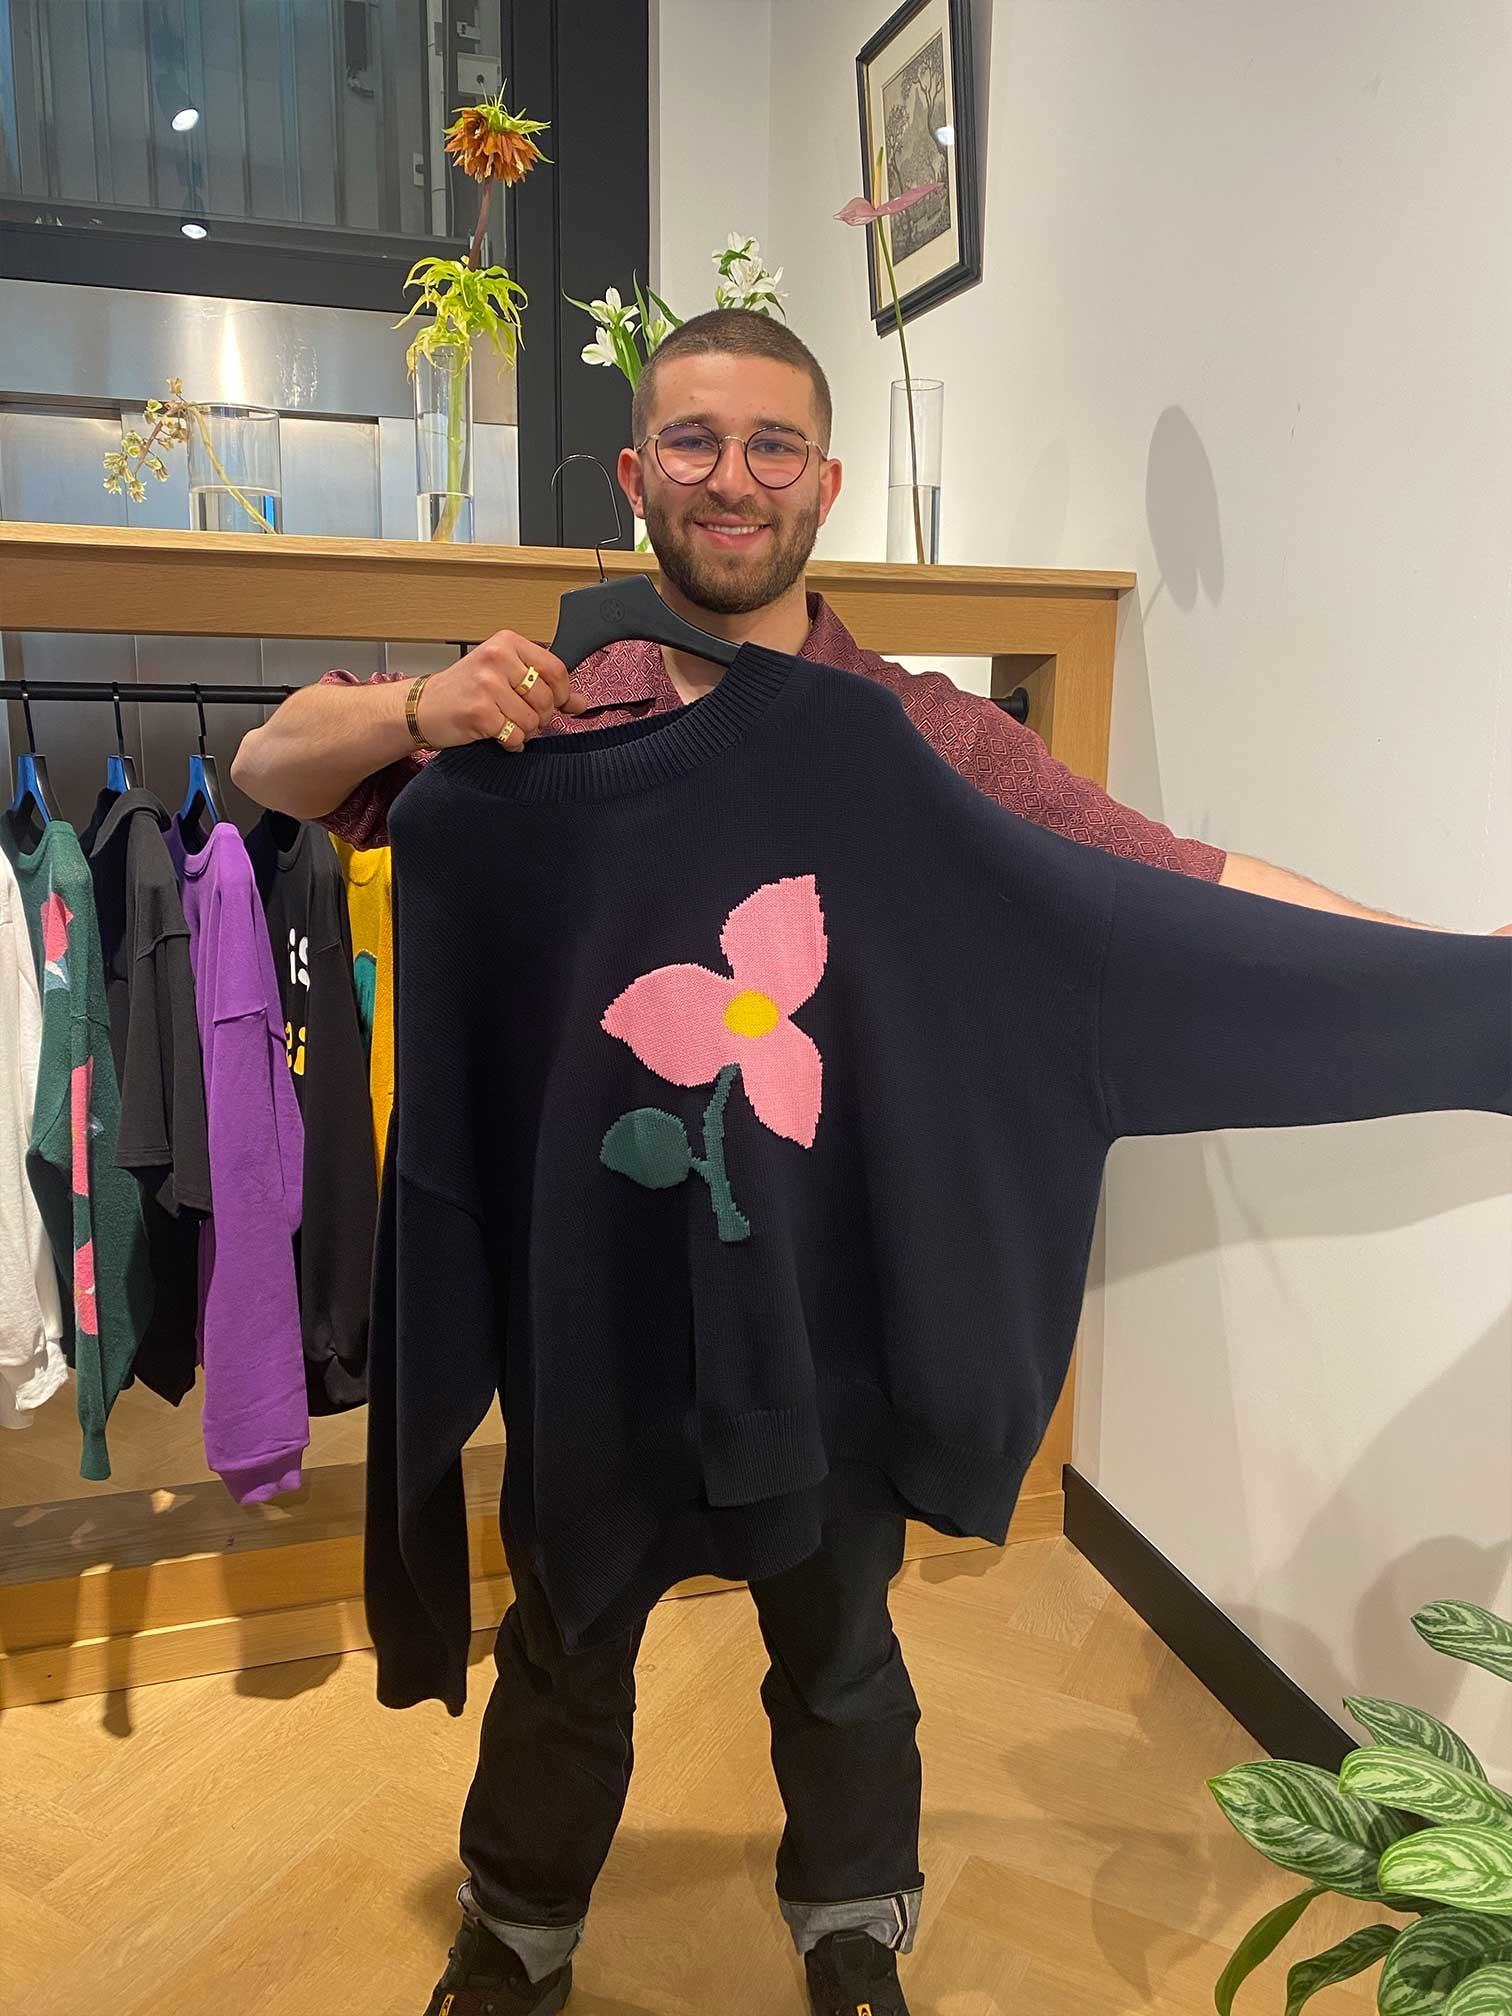 Sacha holds a FiSN sweater with a flower in the middle